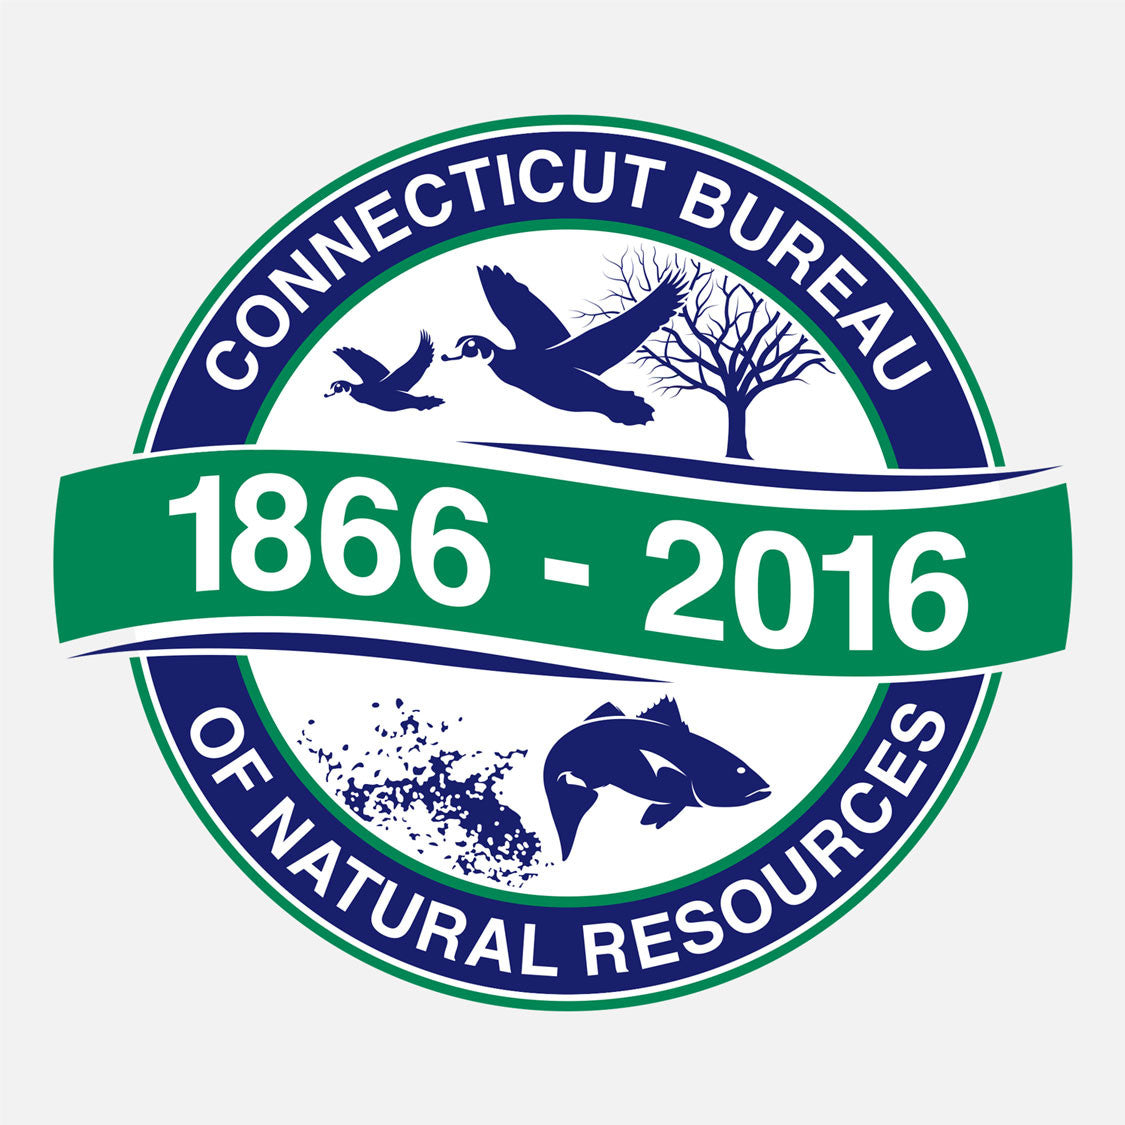 The Connecticut Bureau of Natural Resources recognizing their 150 year anniversary. The logo features a graphic of ducks and fish.